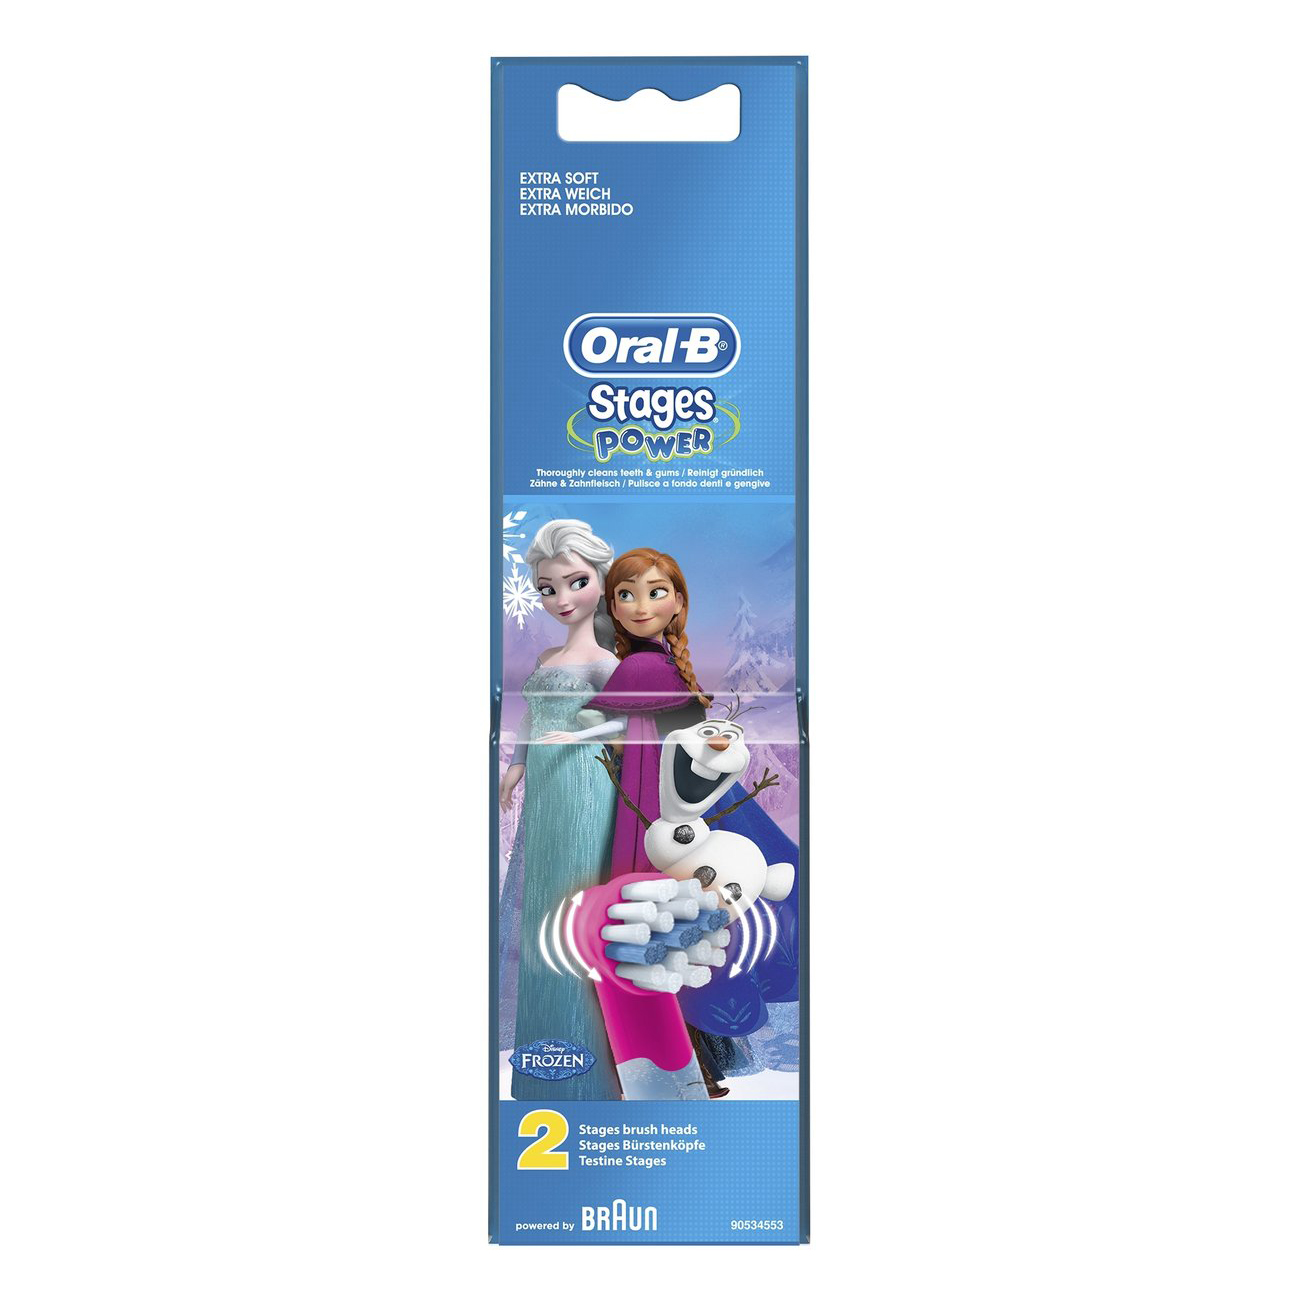 Oral-B tandenborstels (Stages Power Frozen A2) 80279916, EB10-2